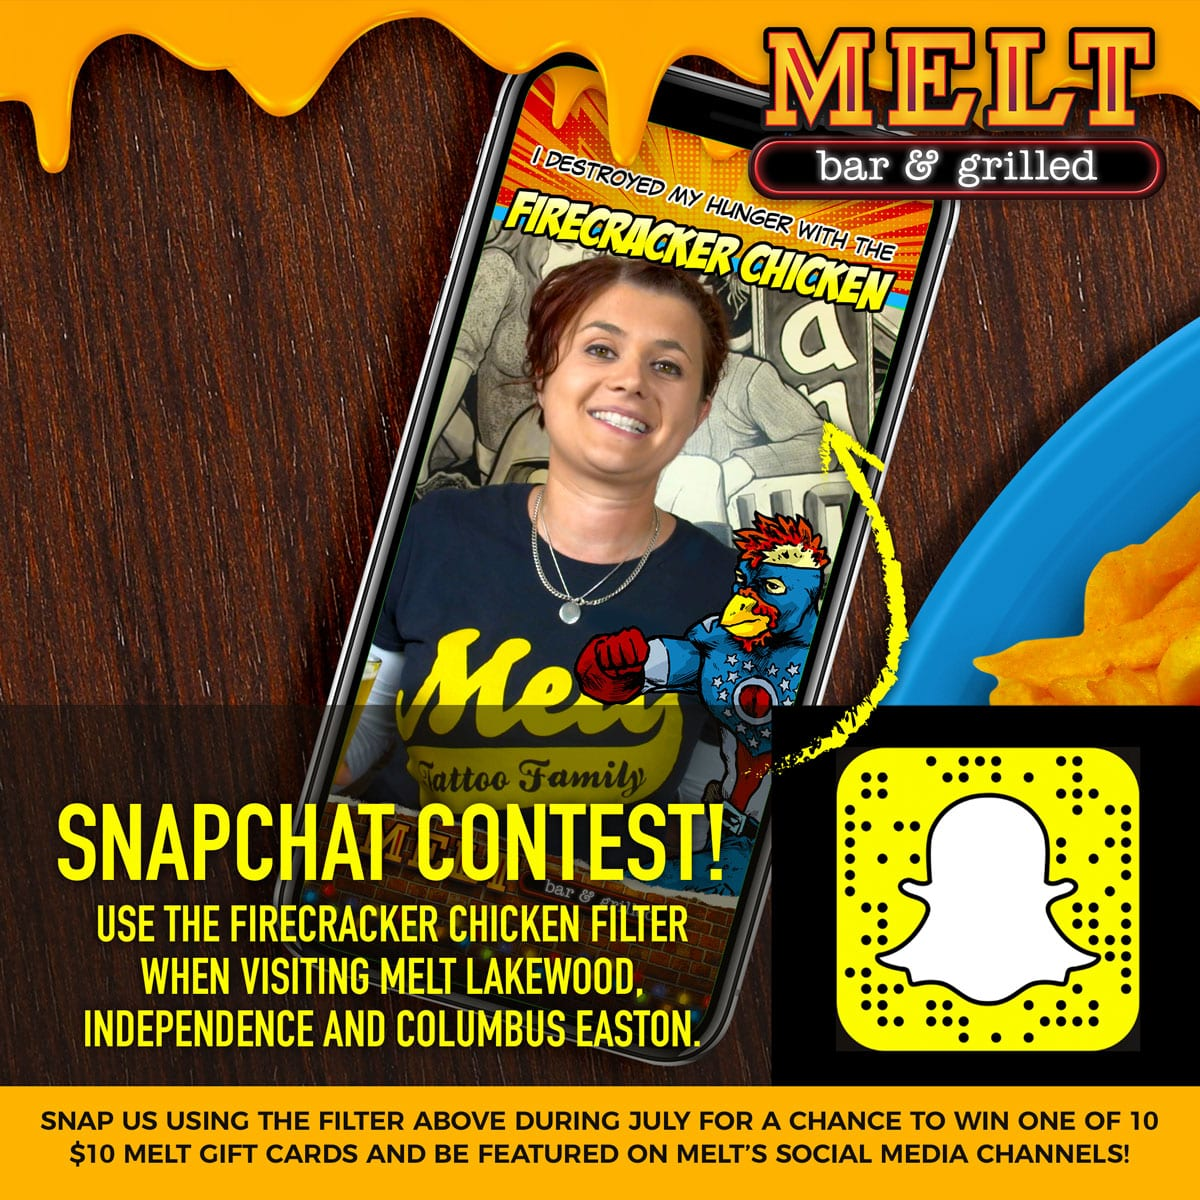 Melt is Celebrating July with a Snapchat Contest!